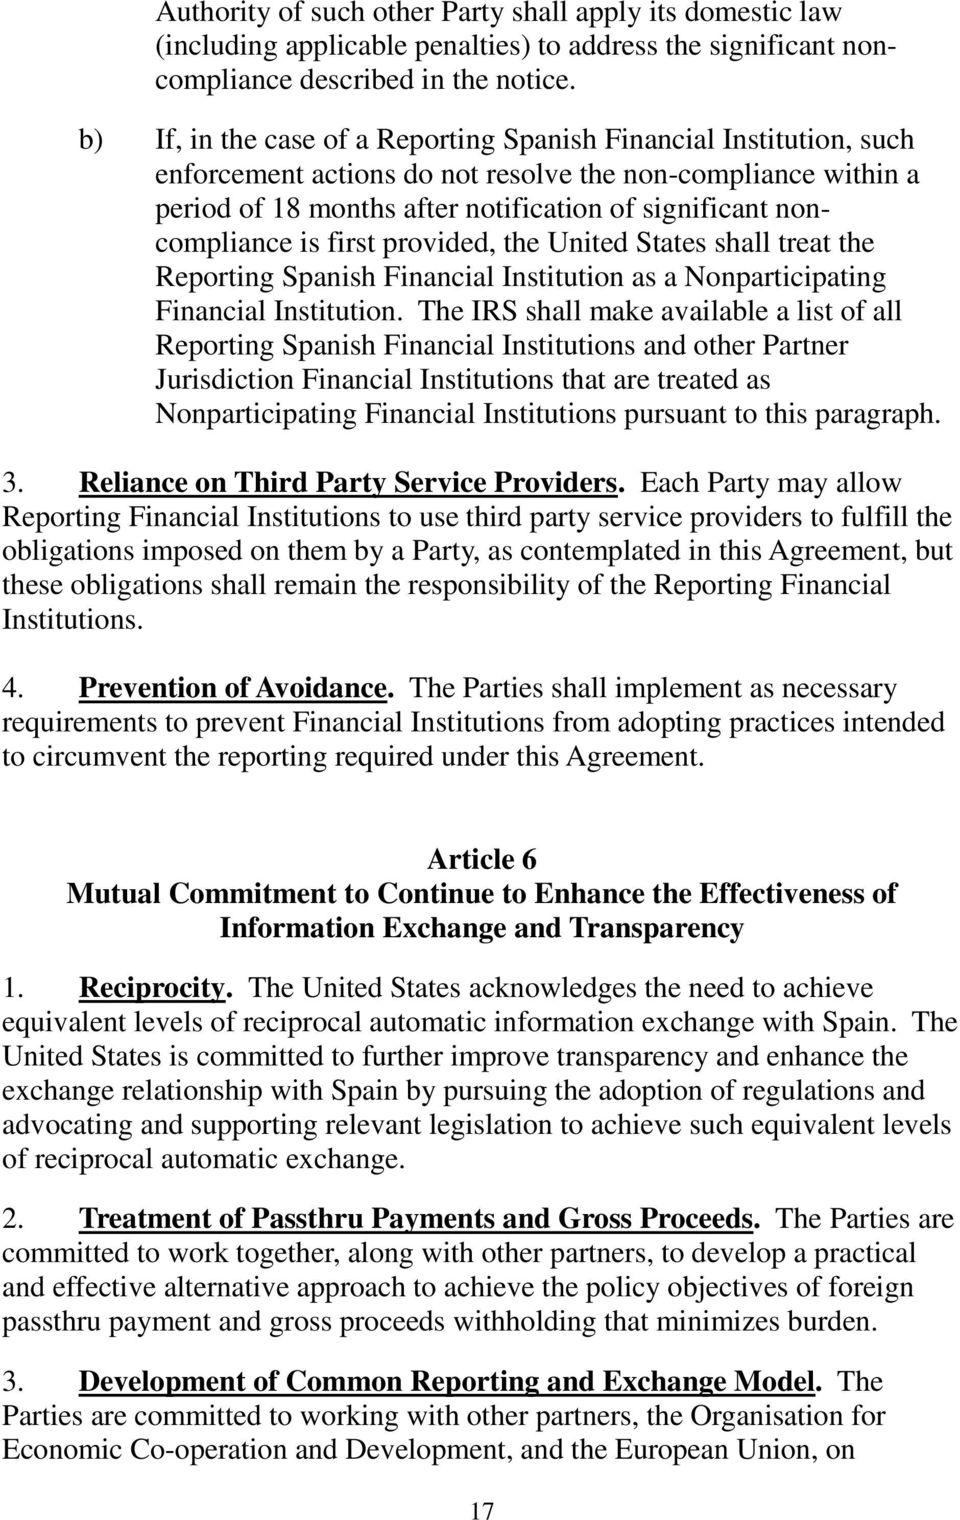 noncompliance is first provided, the United States shall treat the Reporting Spanish Financial Institution as a Nonparticipating Financial Institution.